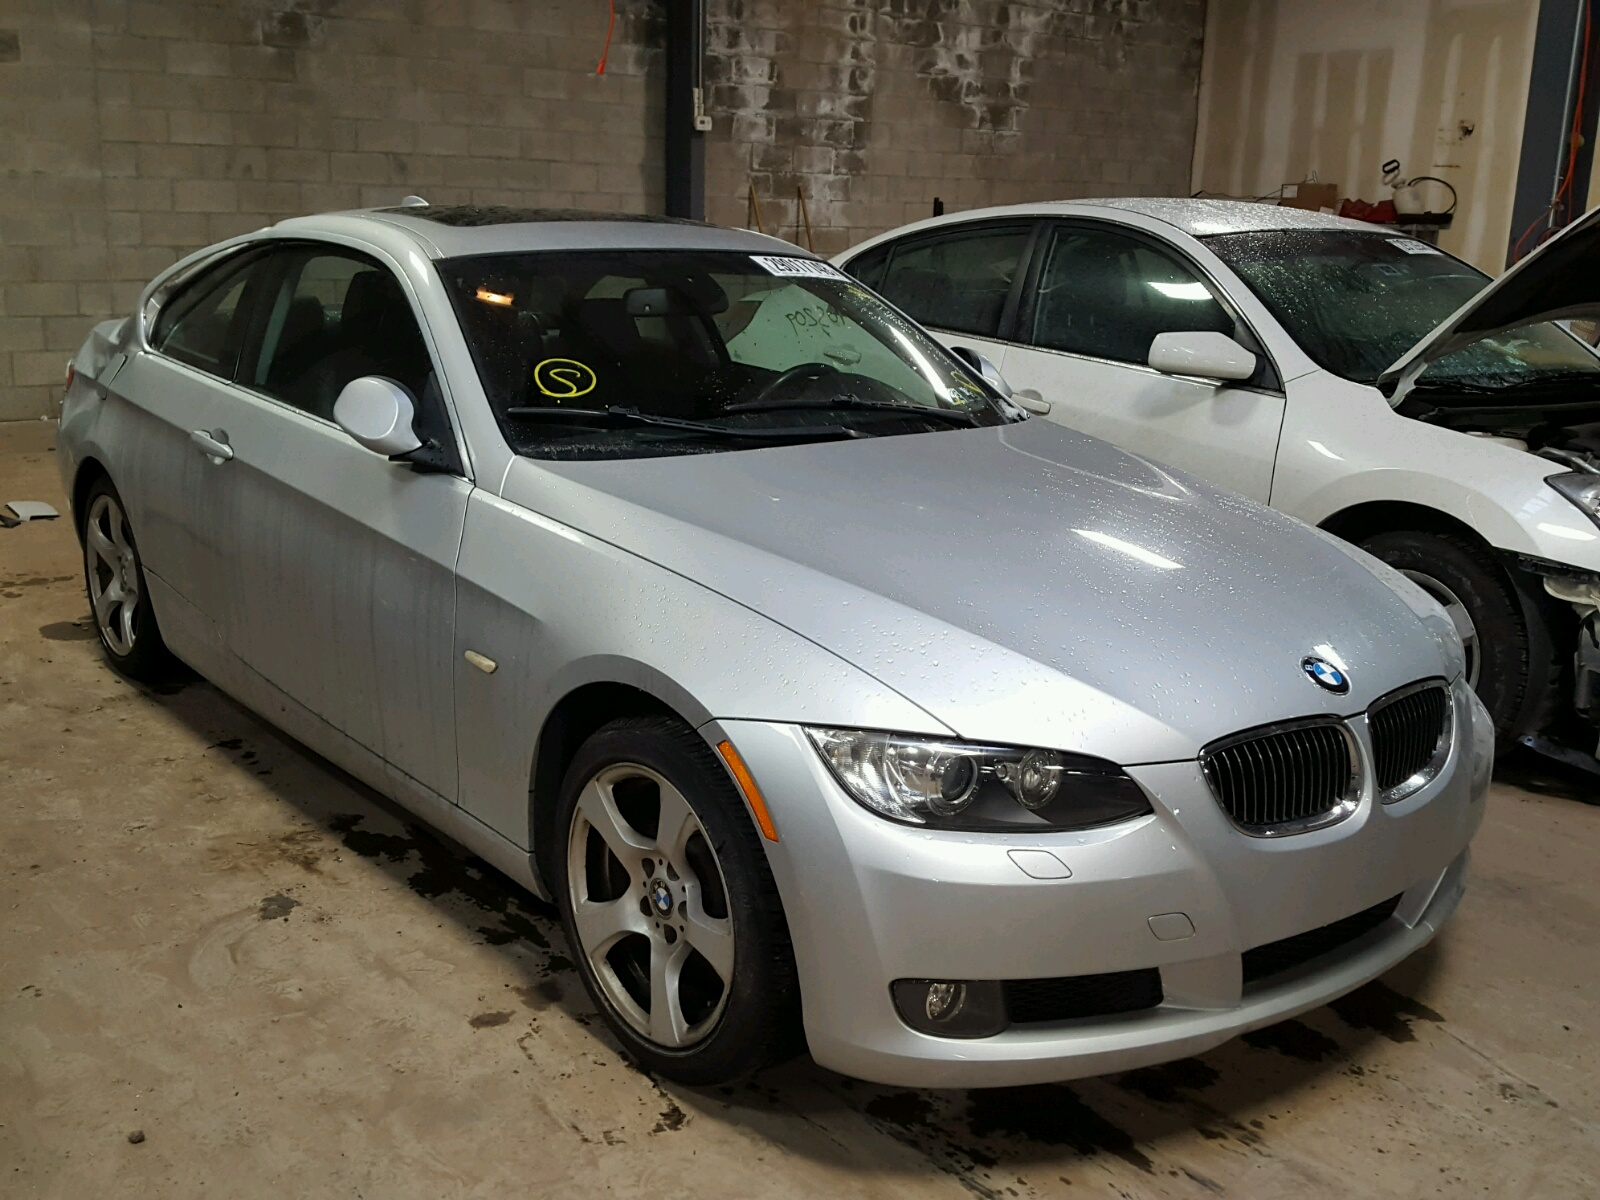 Auto Auction Ended On Vin Wbavc935x7k032880 2007 Bmw 328